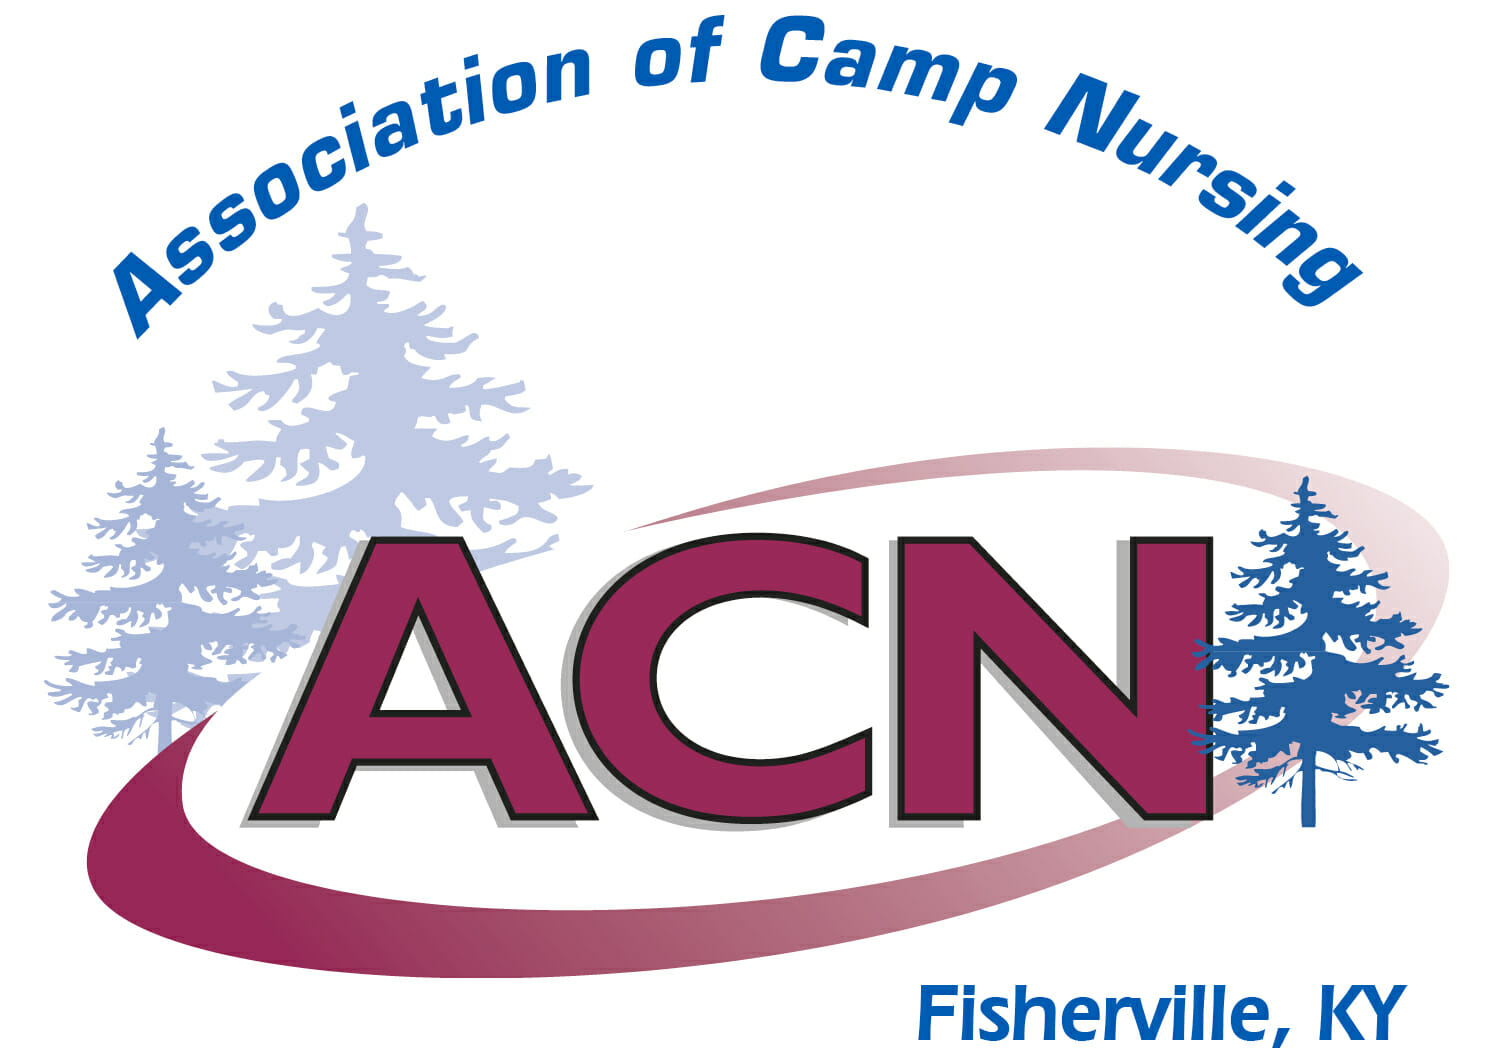 Association of Camp Nursing